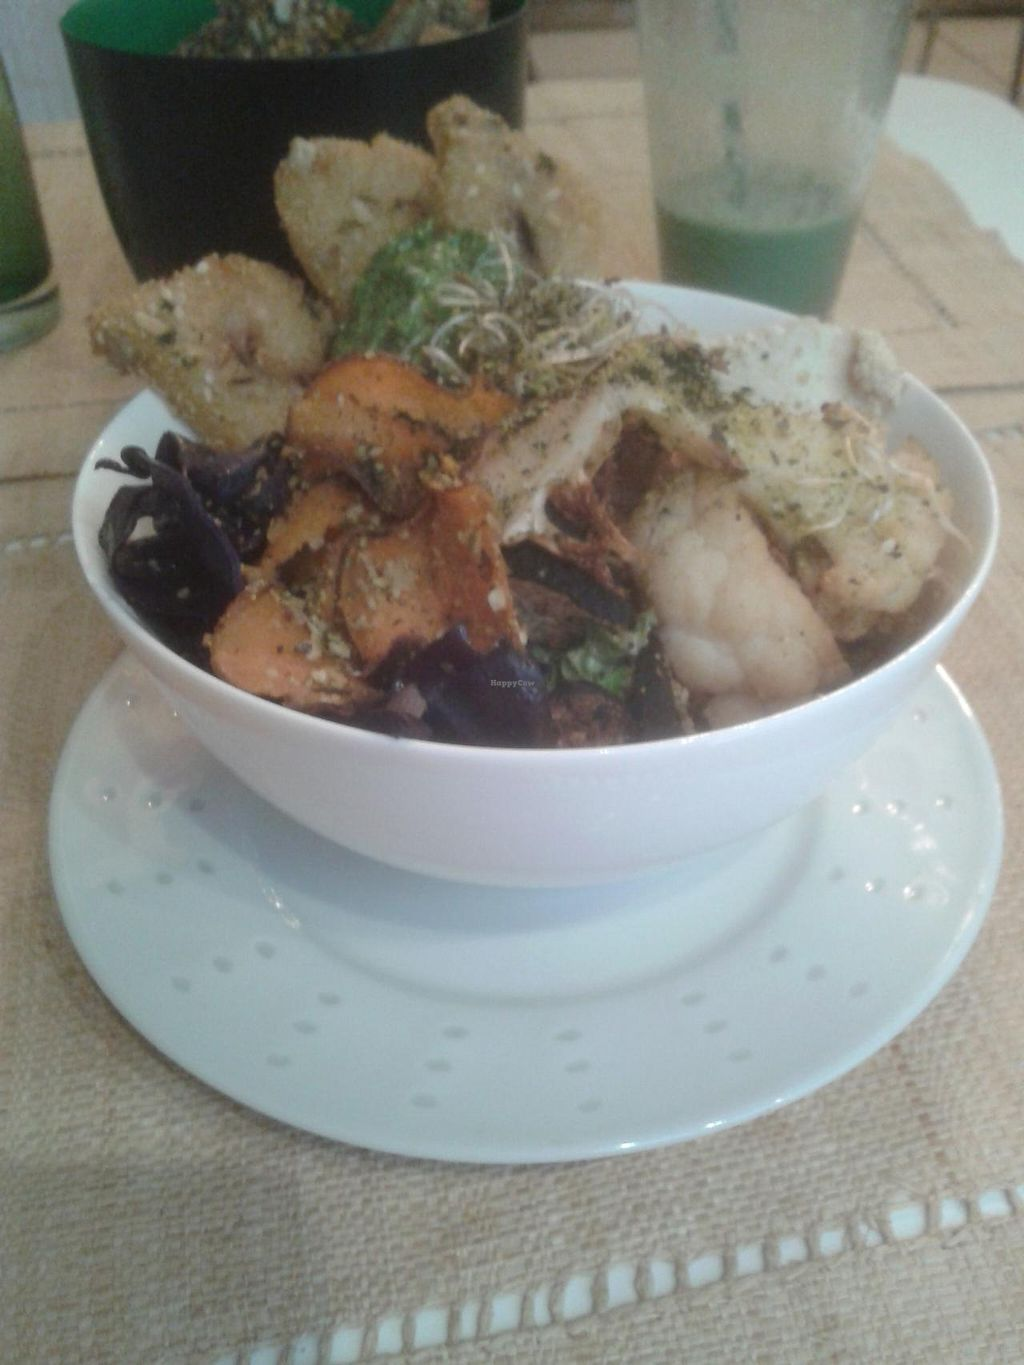 """Photo of CLOSED: Pousse-Pousse  by <a href=""""/members/profile/JonJon"""">JonJon</a> <br/>Super Bowl: hummus, grilled vegetables, salads, cereal cakes <br/> January 15, 2014  - <a href='/contact/abuse/image/17084/62569'>Report</a>"""